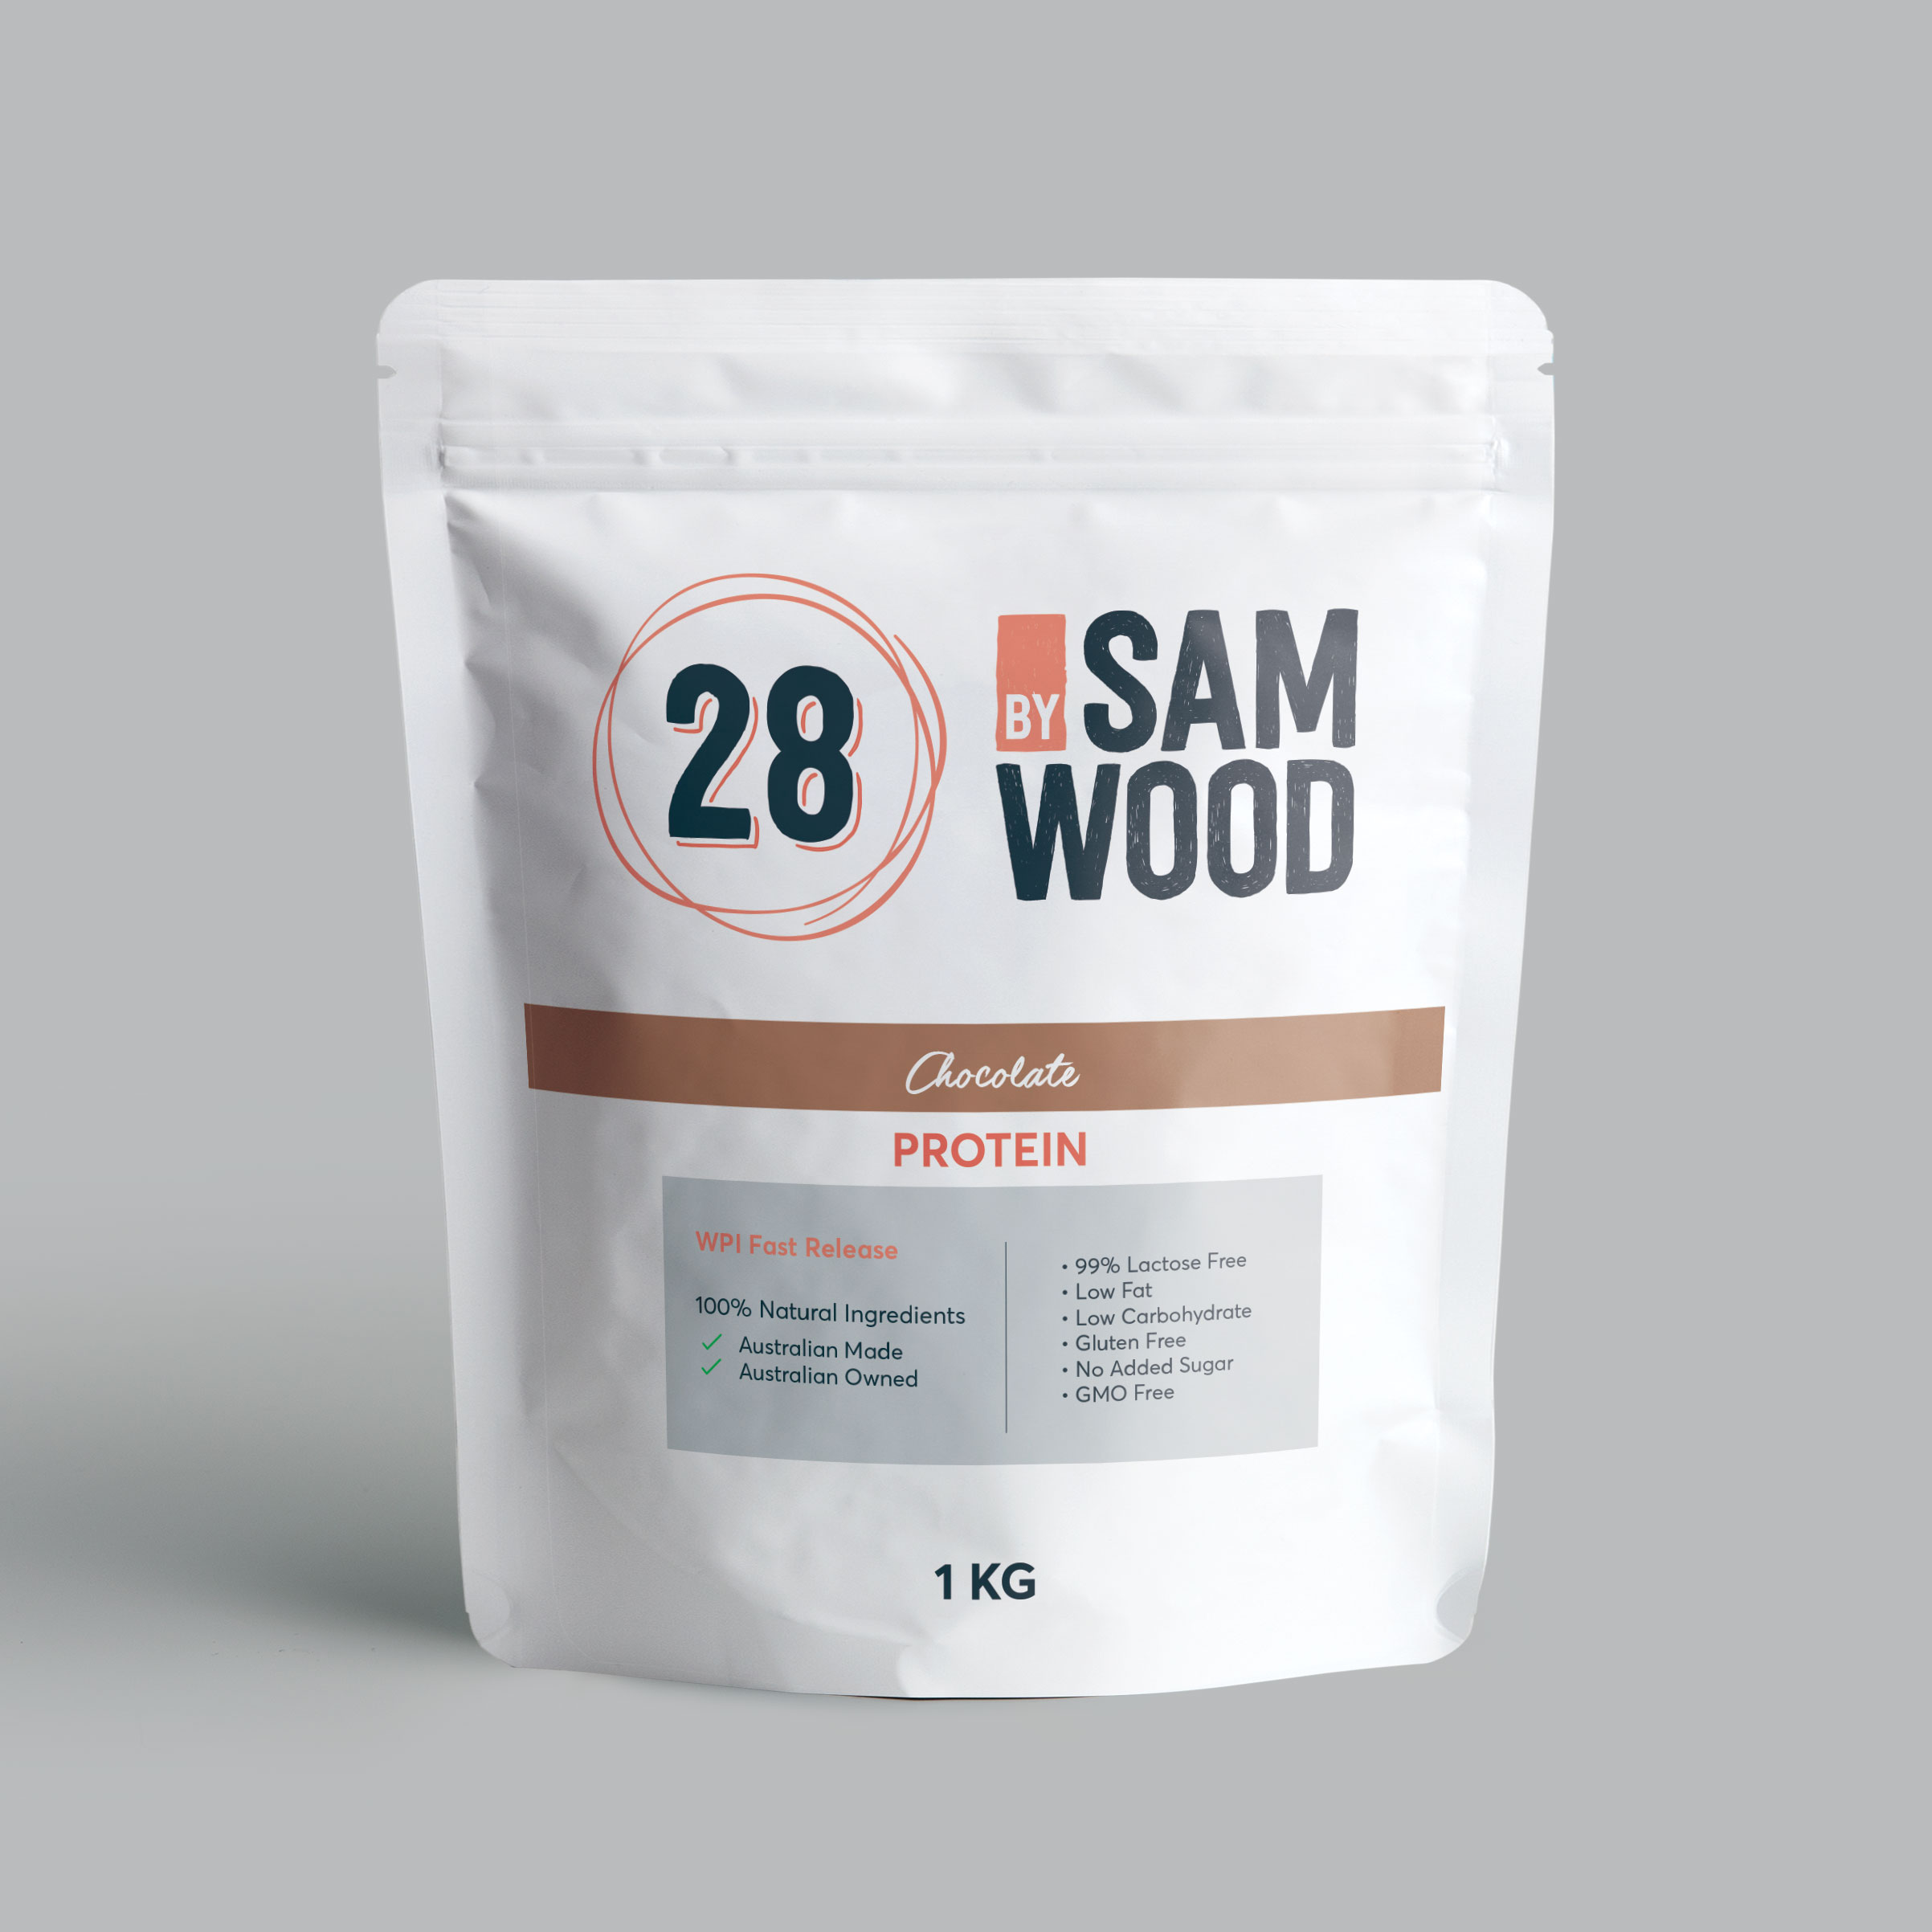 natural chocolate whey isolate powder from 28bysamwood